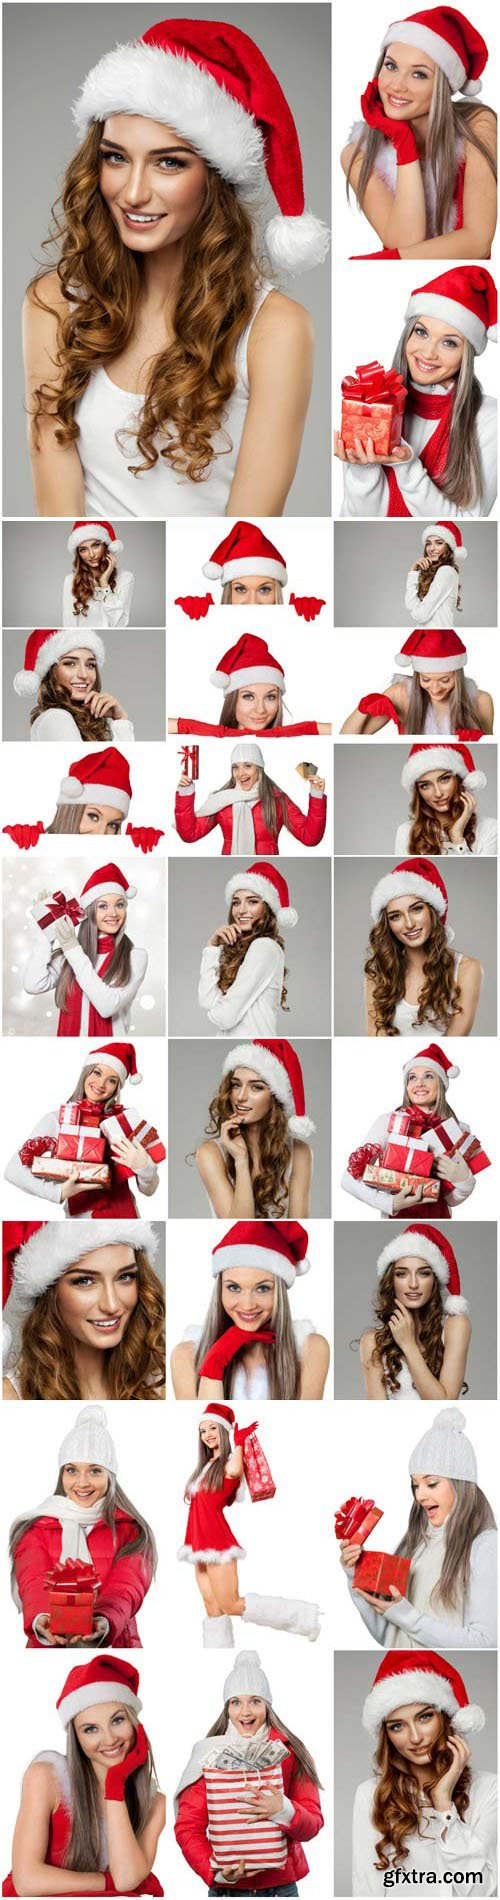 New Year and Christmas stock photos №59